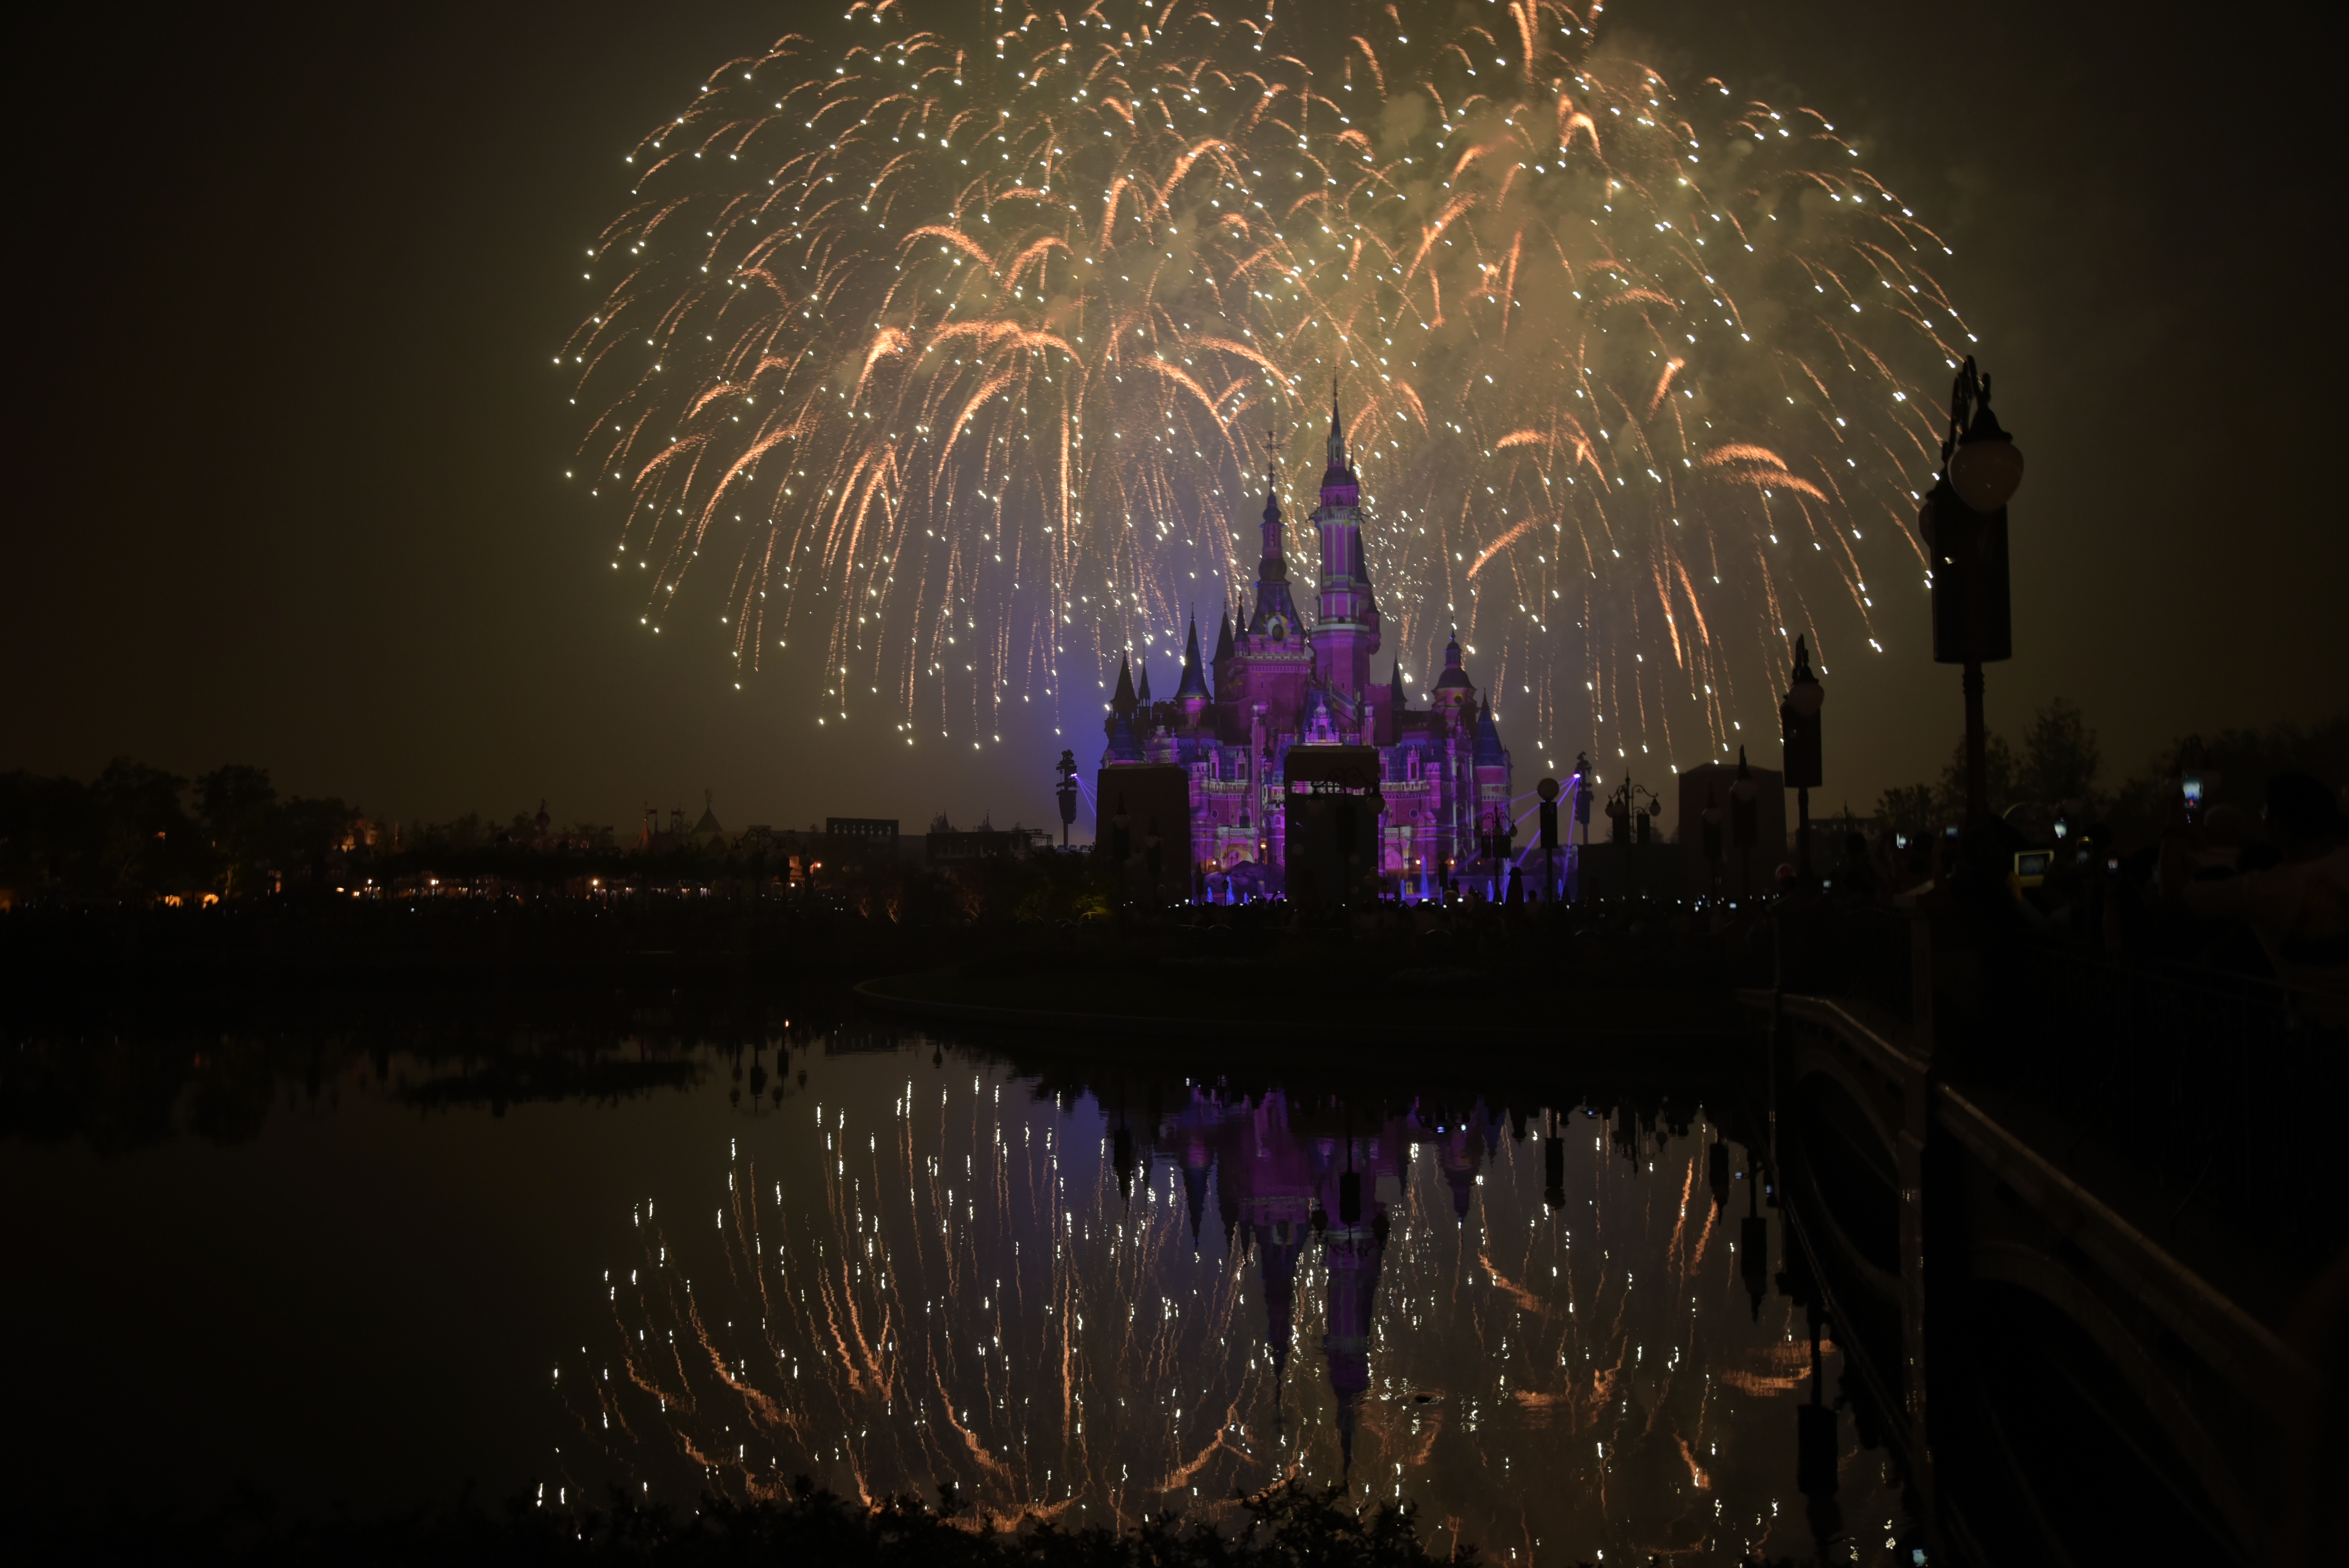 why was disney s shanghai theme park so controversial Why was disney's shanghai theme park so controversial what are the risks and benefits of this project ans: one major controversy was as the project was under consideration b y beijing, shanghai's communist party boss was implicated in a big corruption investigation.